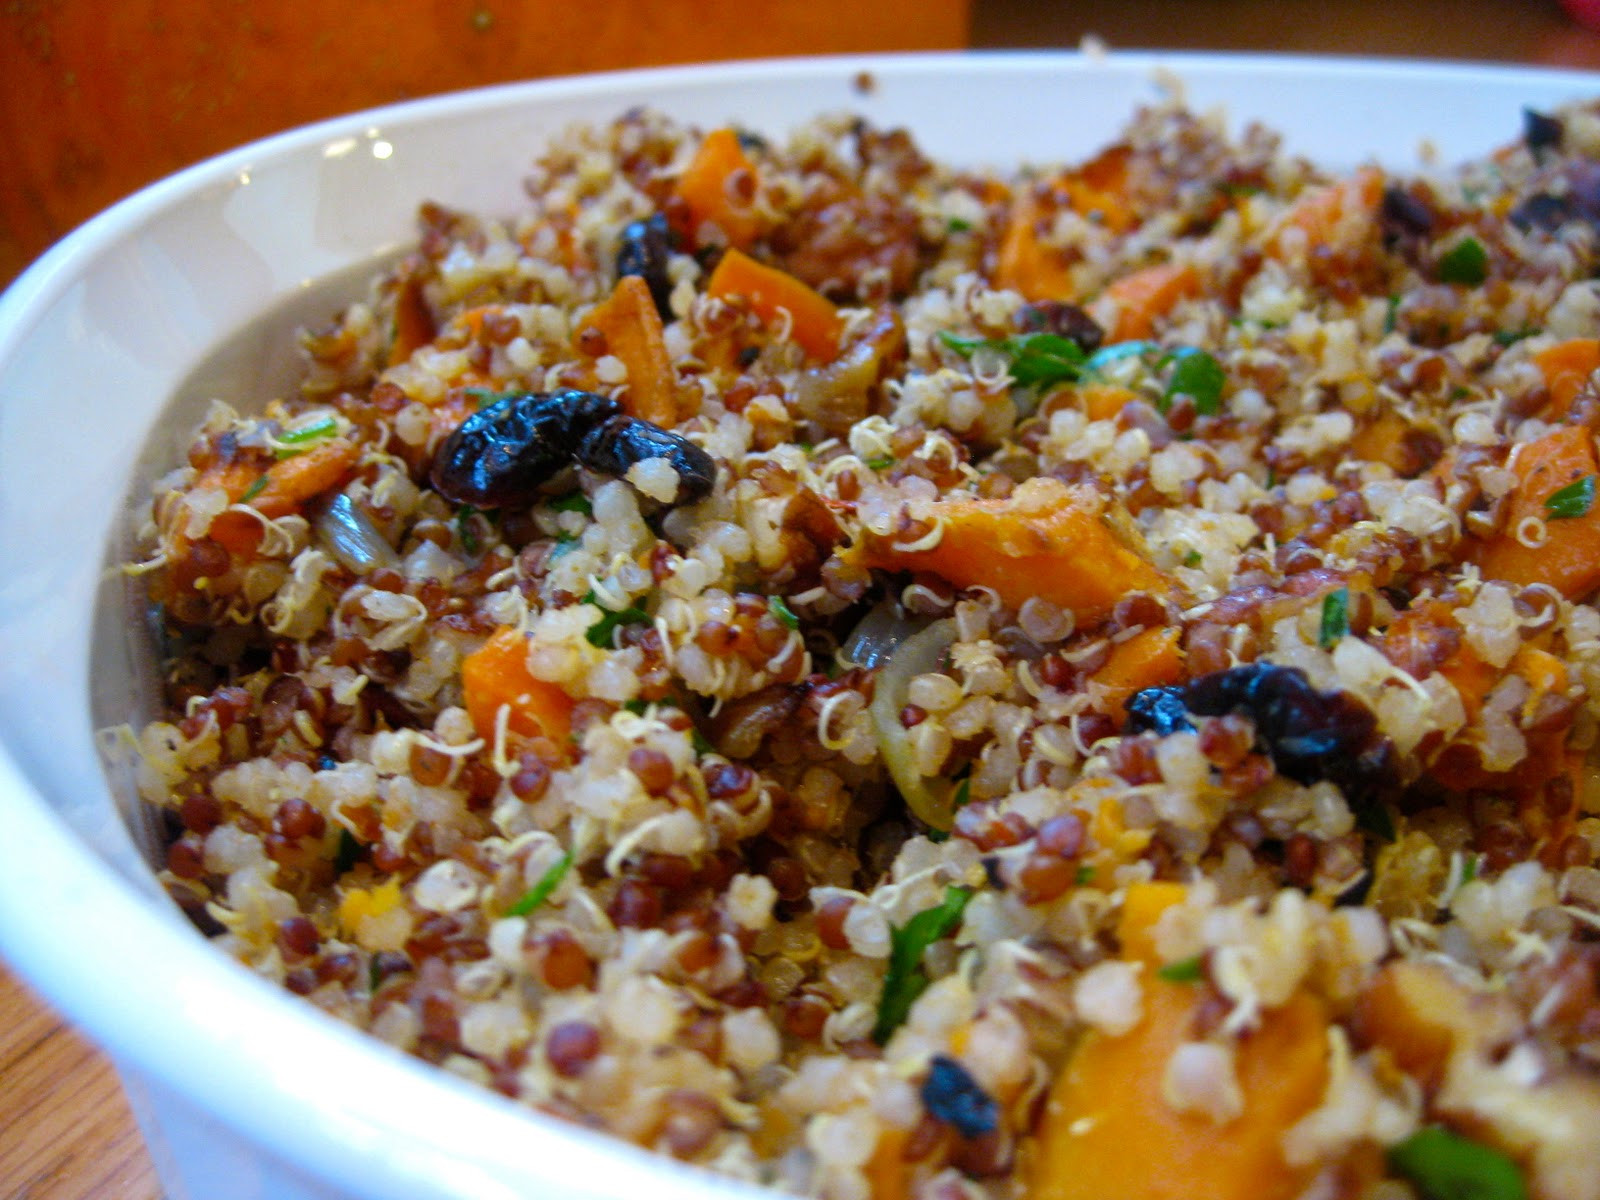 Gluten Free Stuffing Recipes For Thanksgiving  Quinoa Stuffing Recipe Gluten Free & Vegan